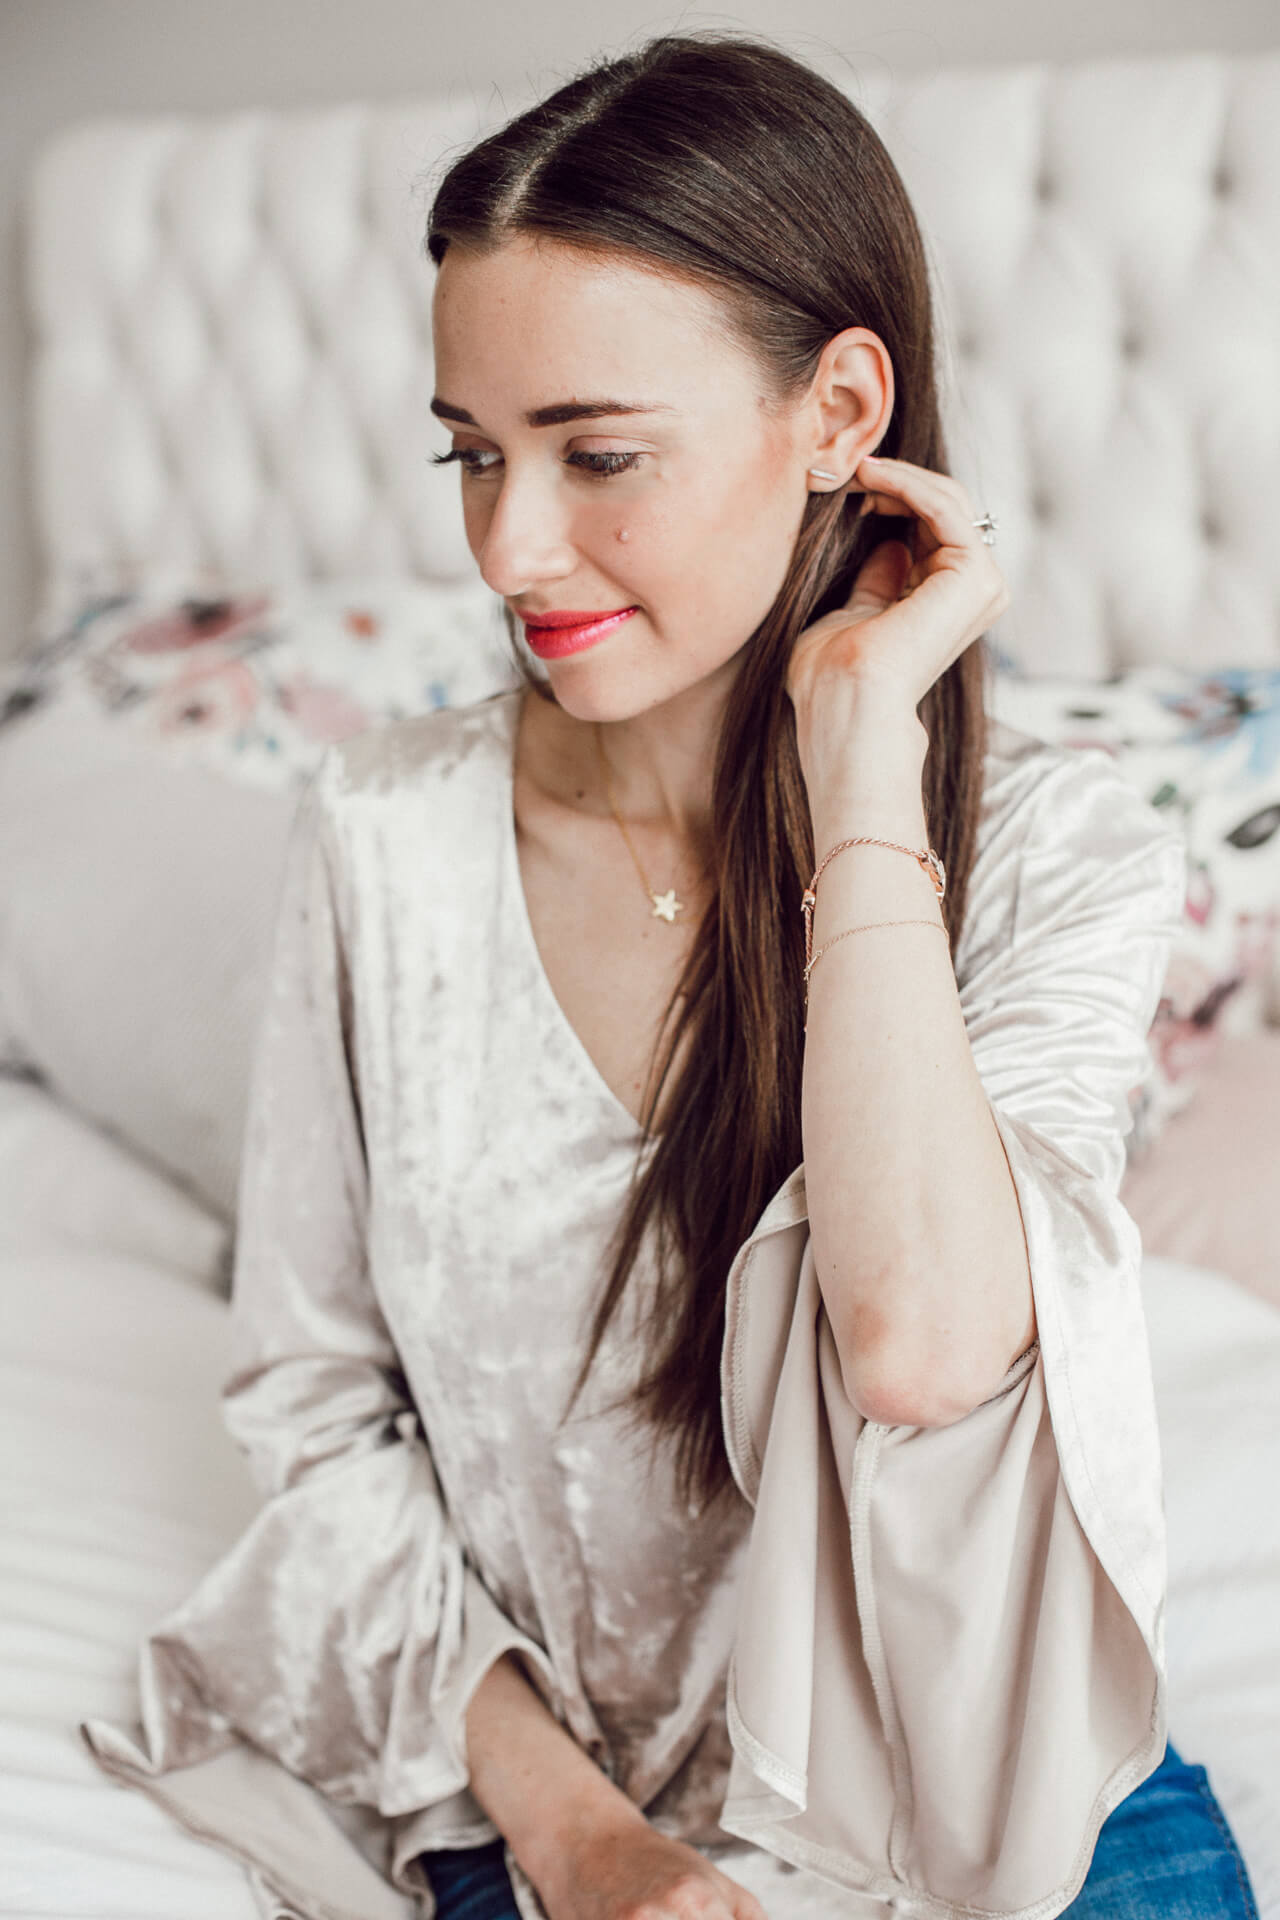 Sharing my favorite jewelry pieces to wear every day - M Loves M @marmar